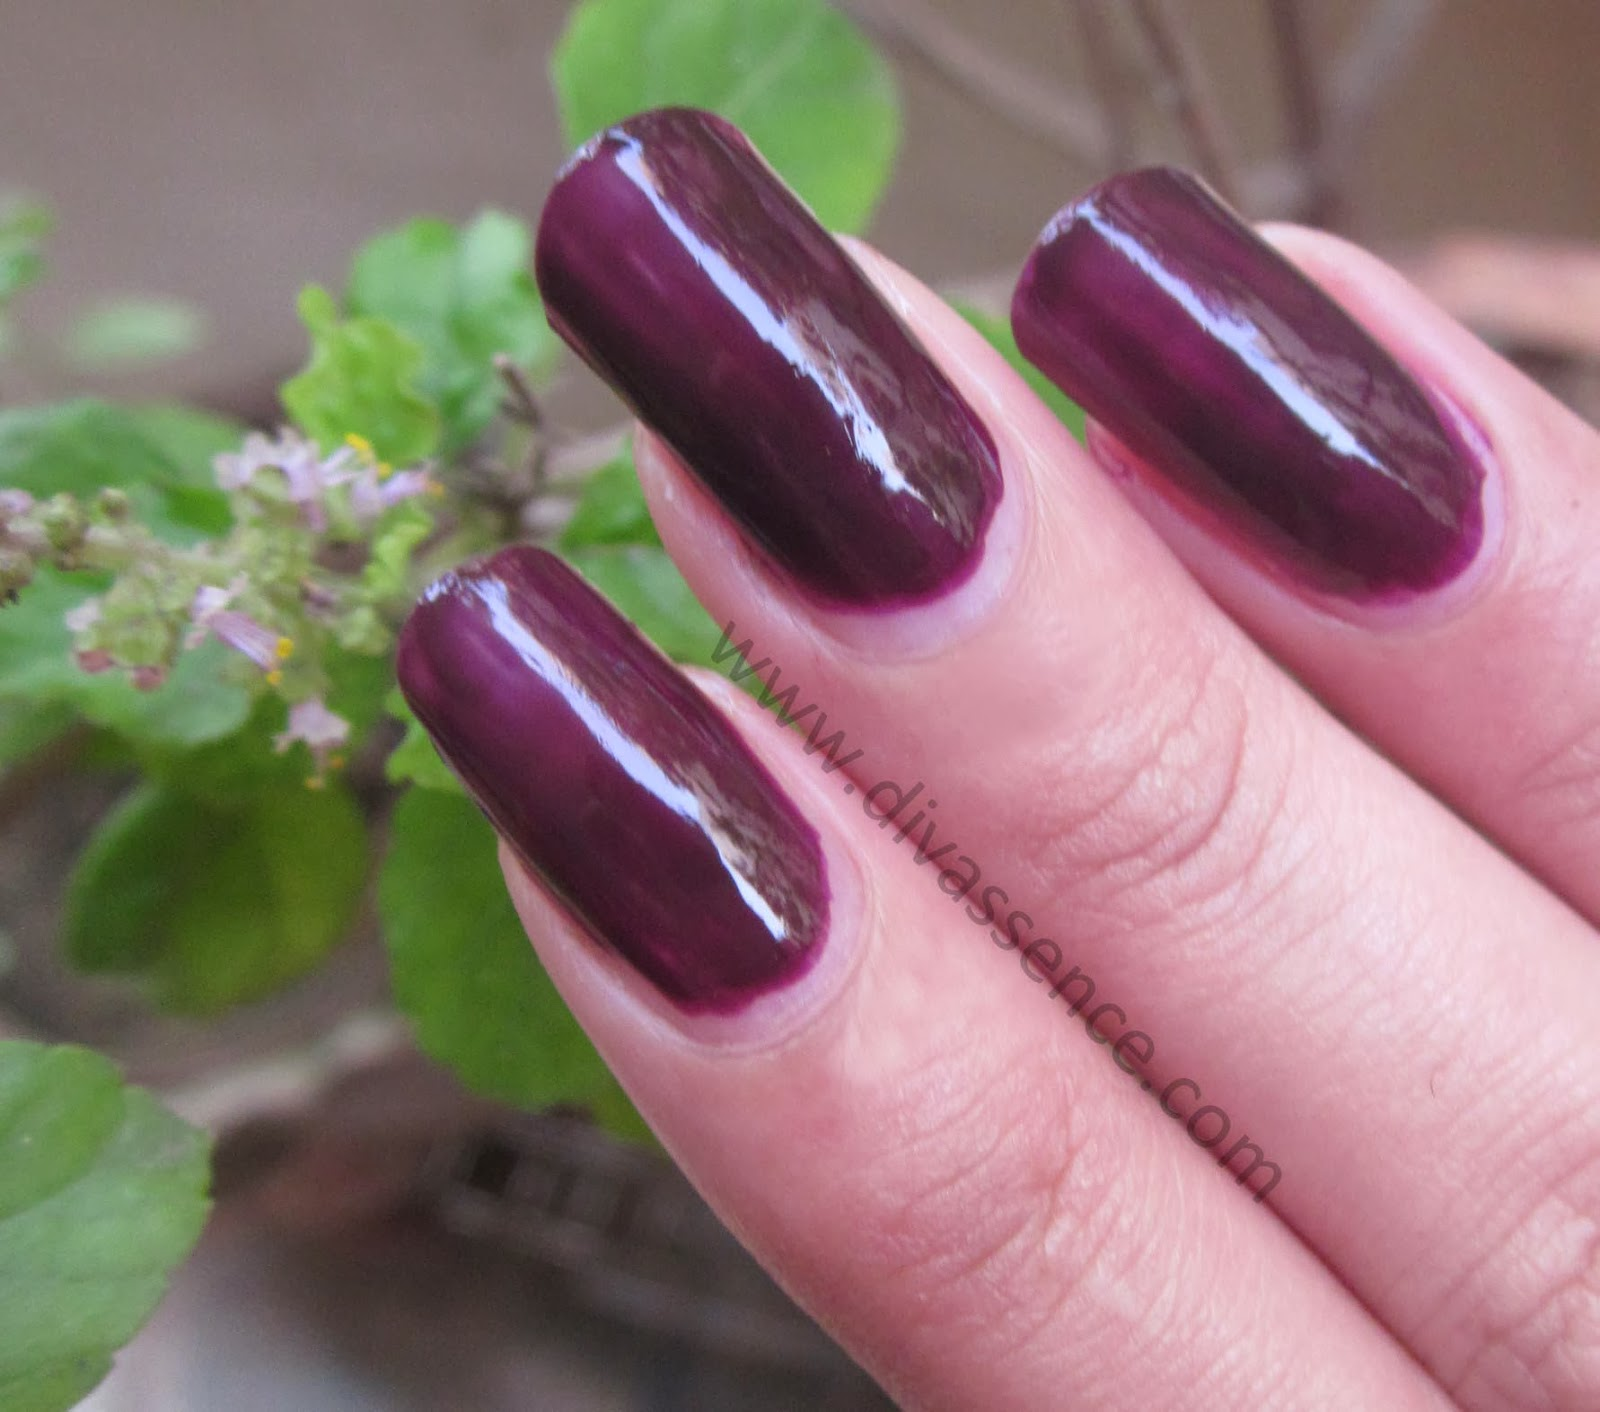 Maybelline Color Show Crazy Berry